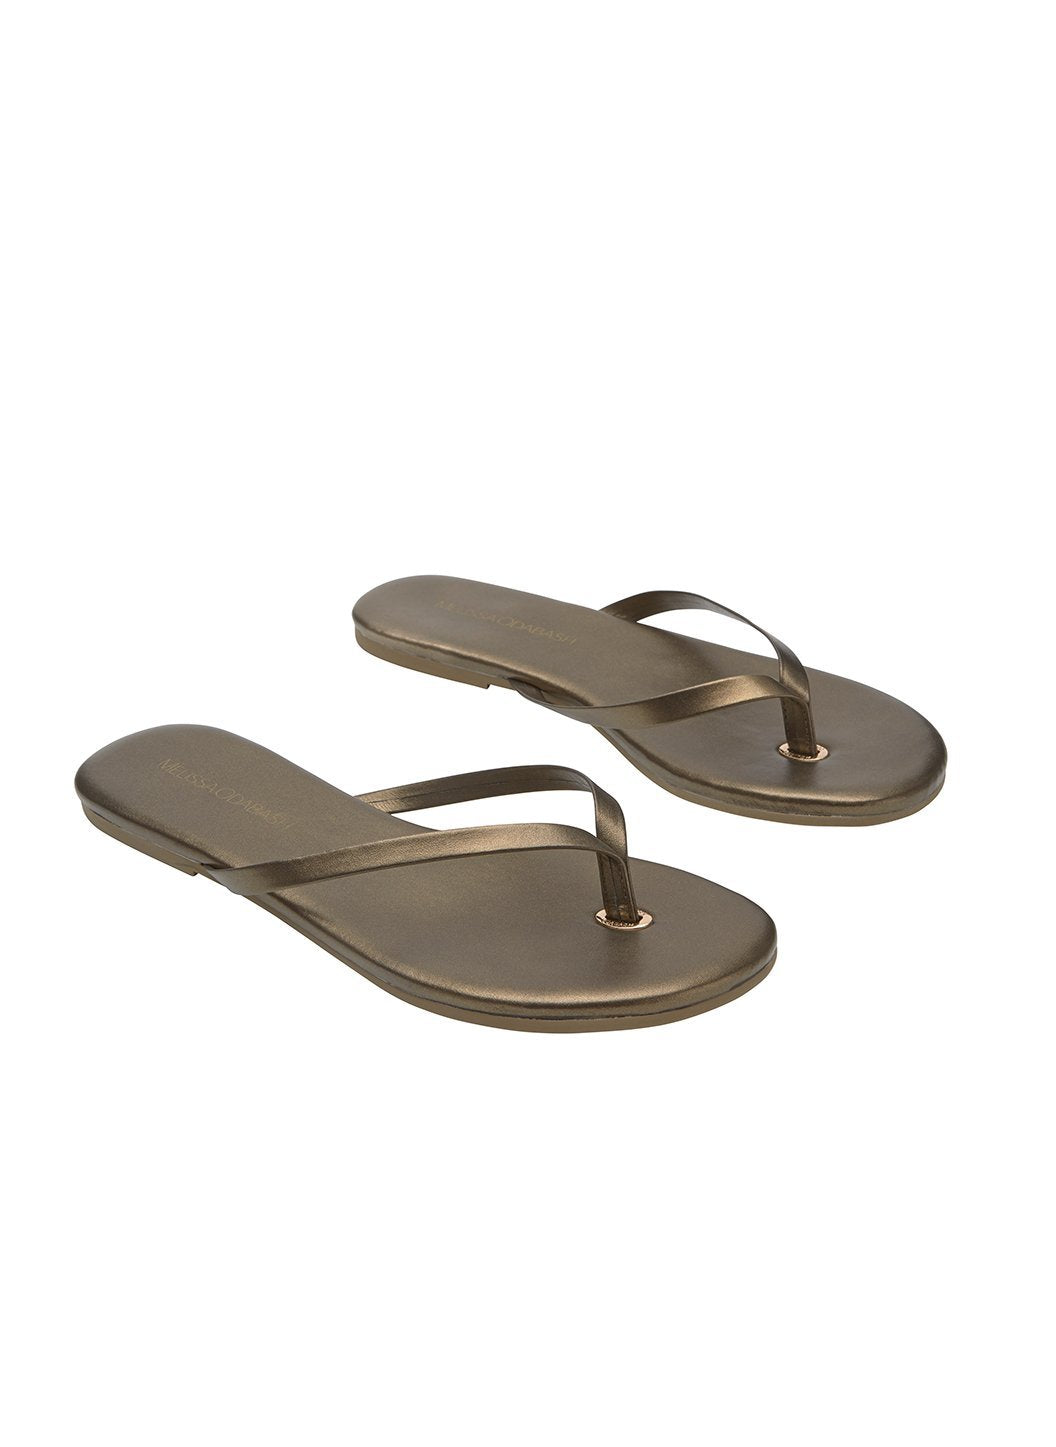 flip flop leather bronze 2019 2